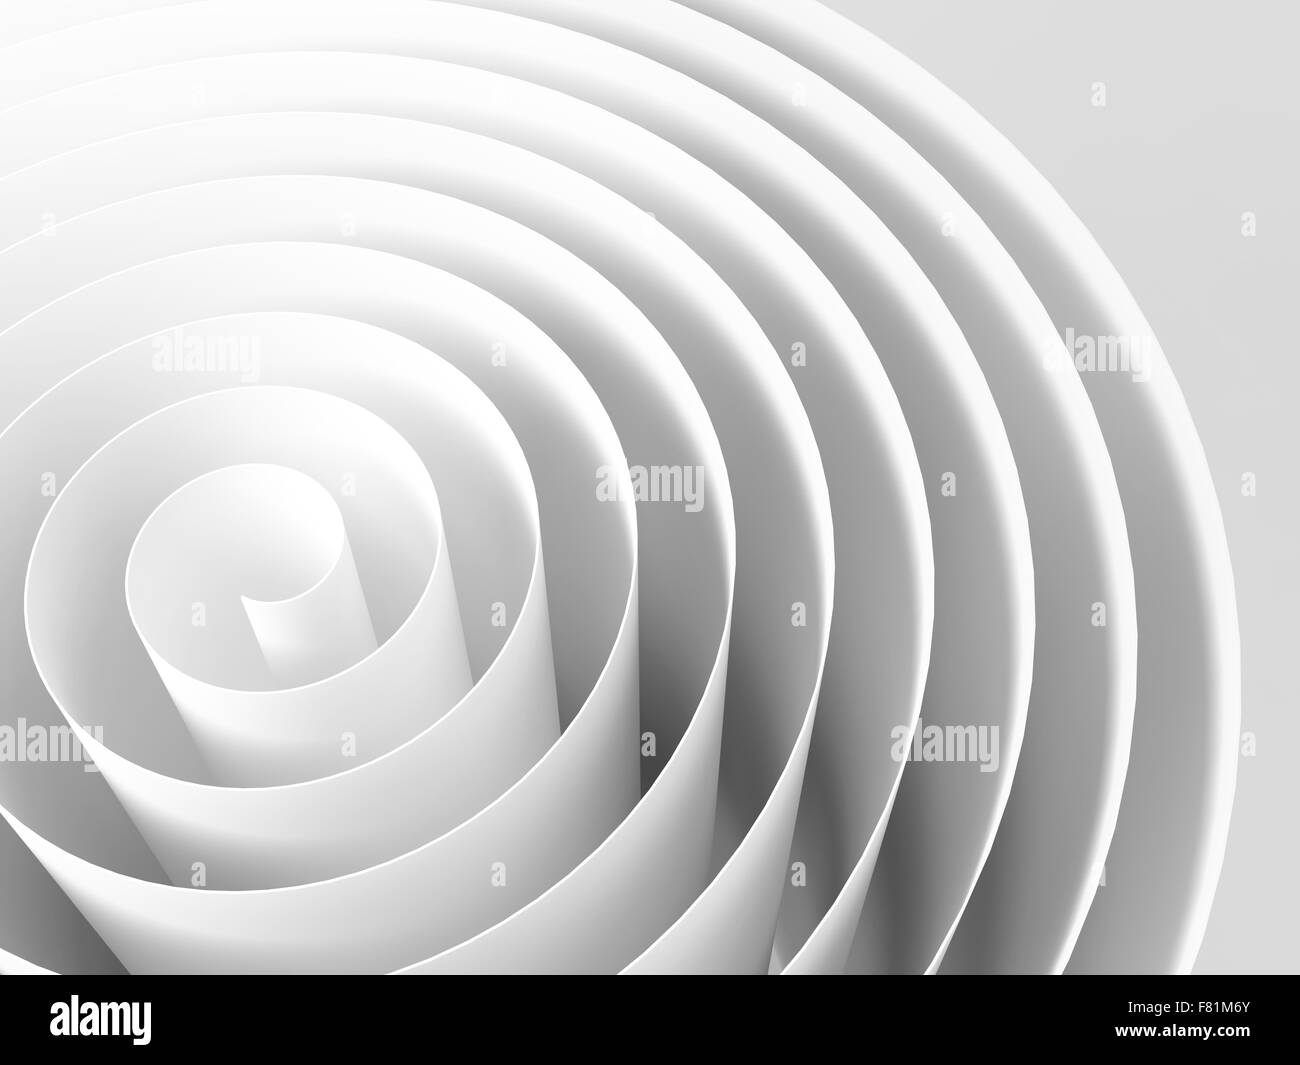 White 3d spiral made of paper tape with soft shadows, abstract digital illustration, background pattern - Stock Image